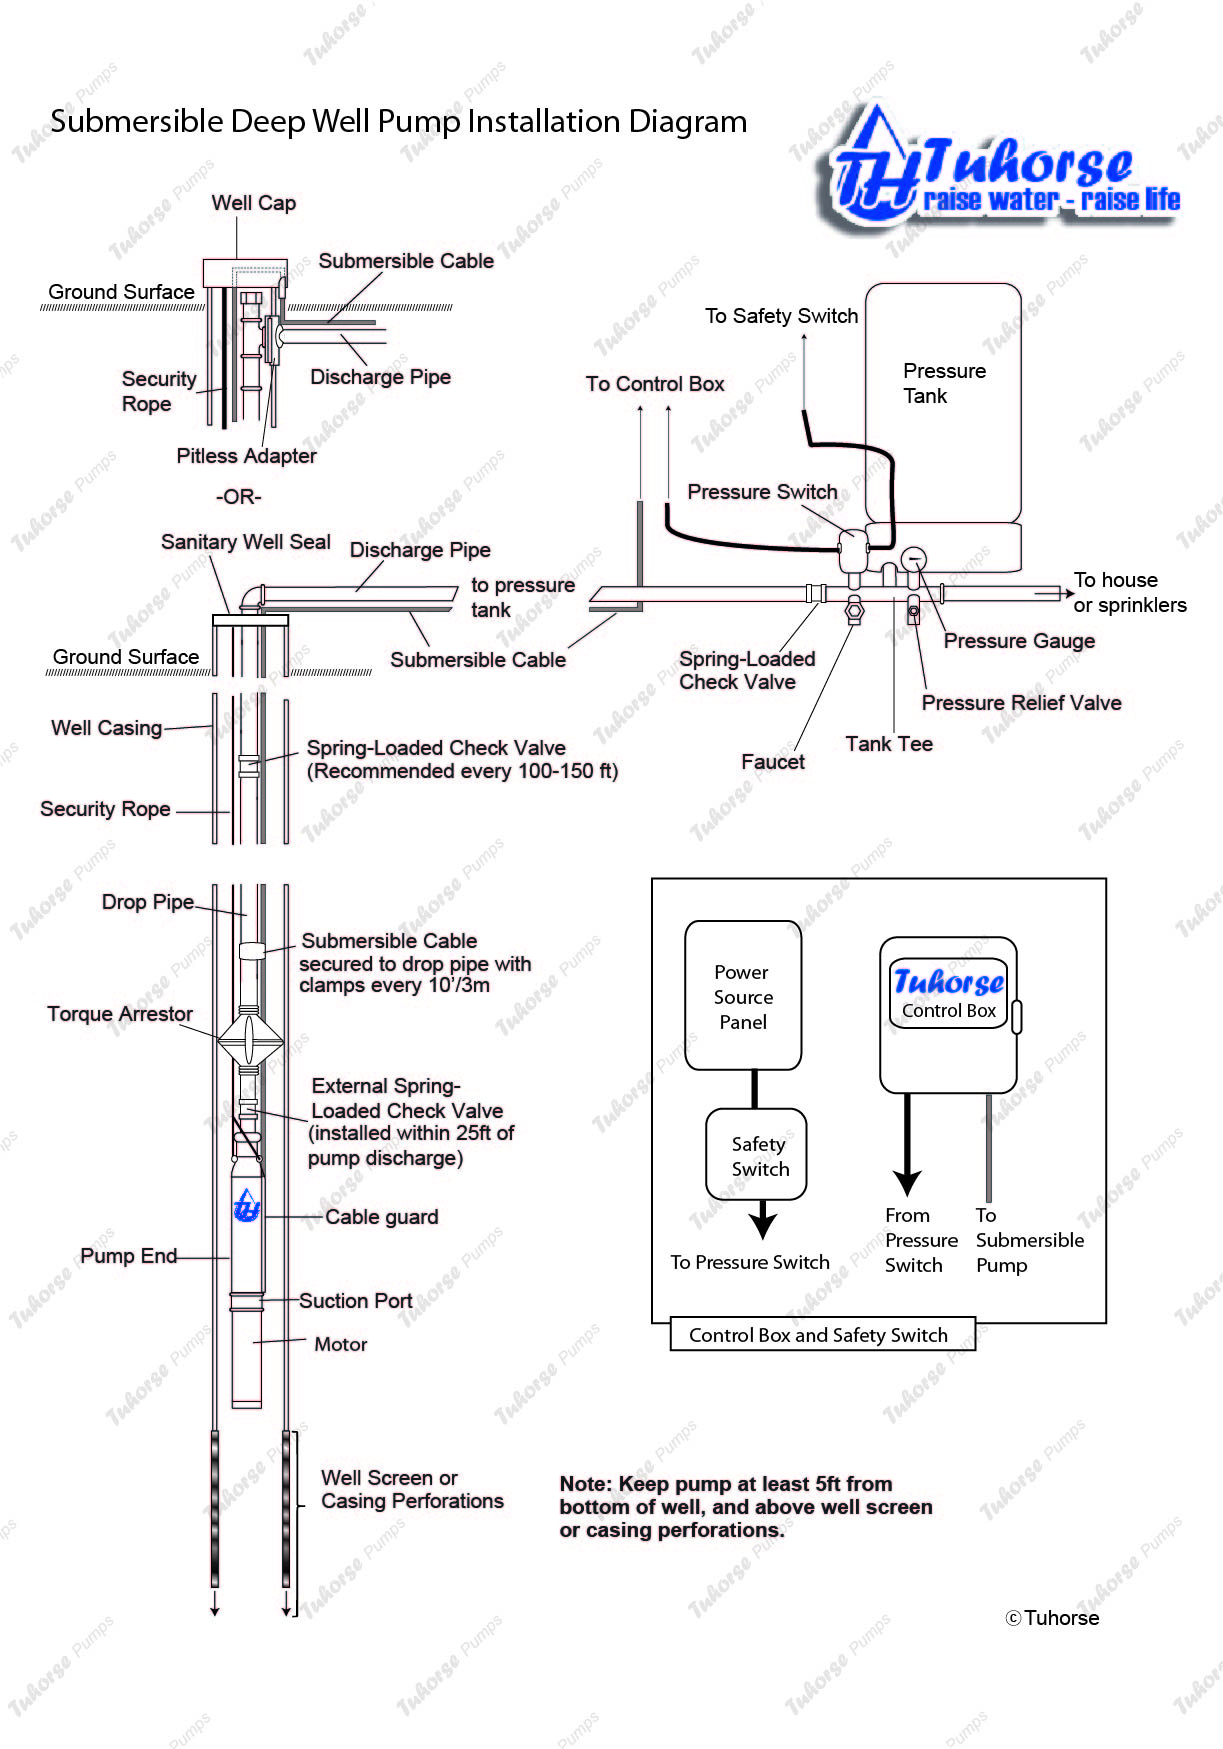 watermarkedinstallationdiagram4 pump installation wiring diagrams 3 phase irrigation pump panel at gsmportal.co